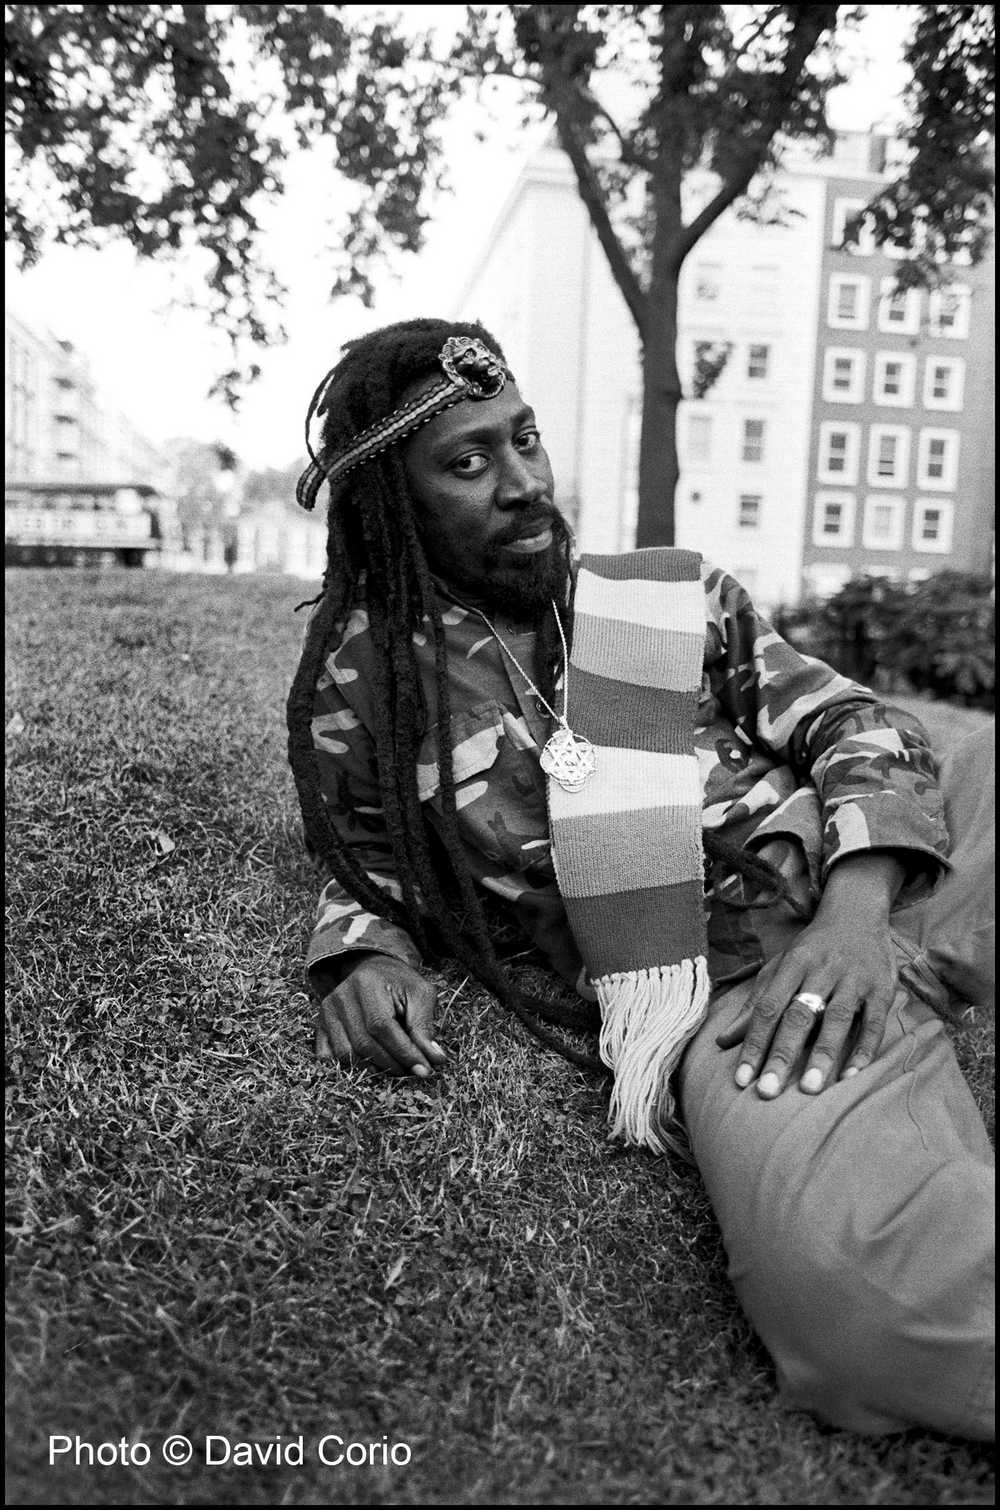 Bunny Wailer in Notting Hill, London 17 August 1988 by David Corio